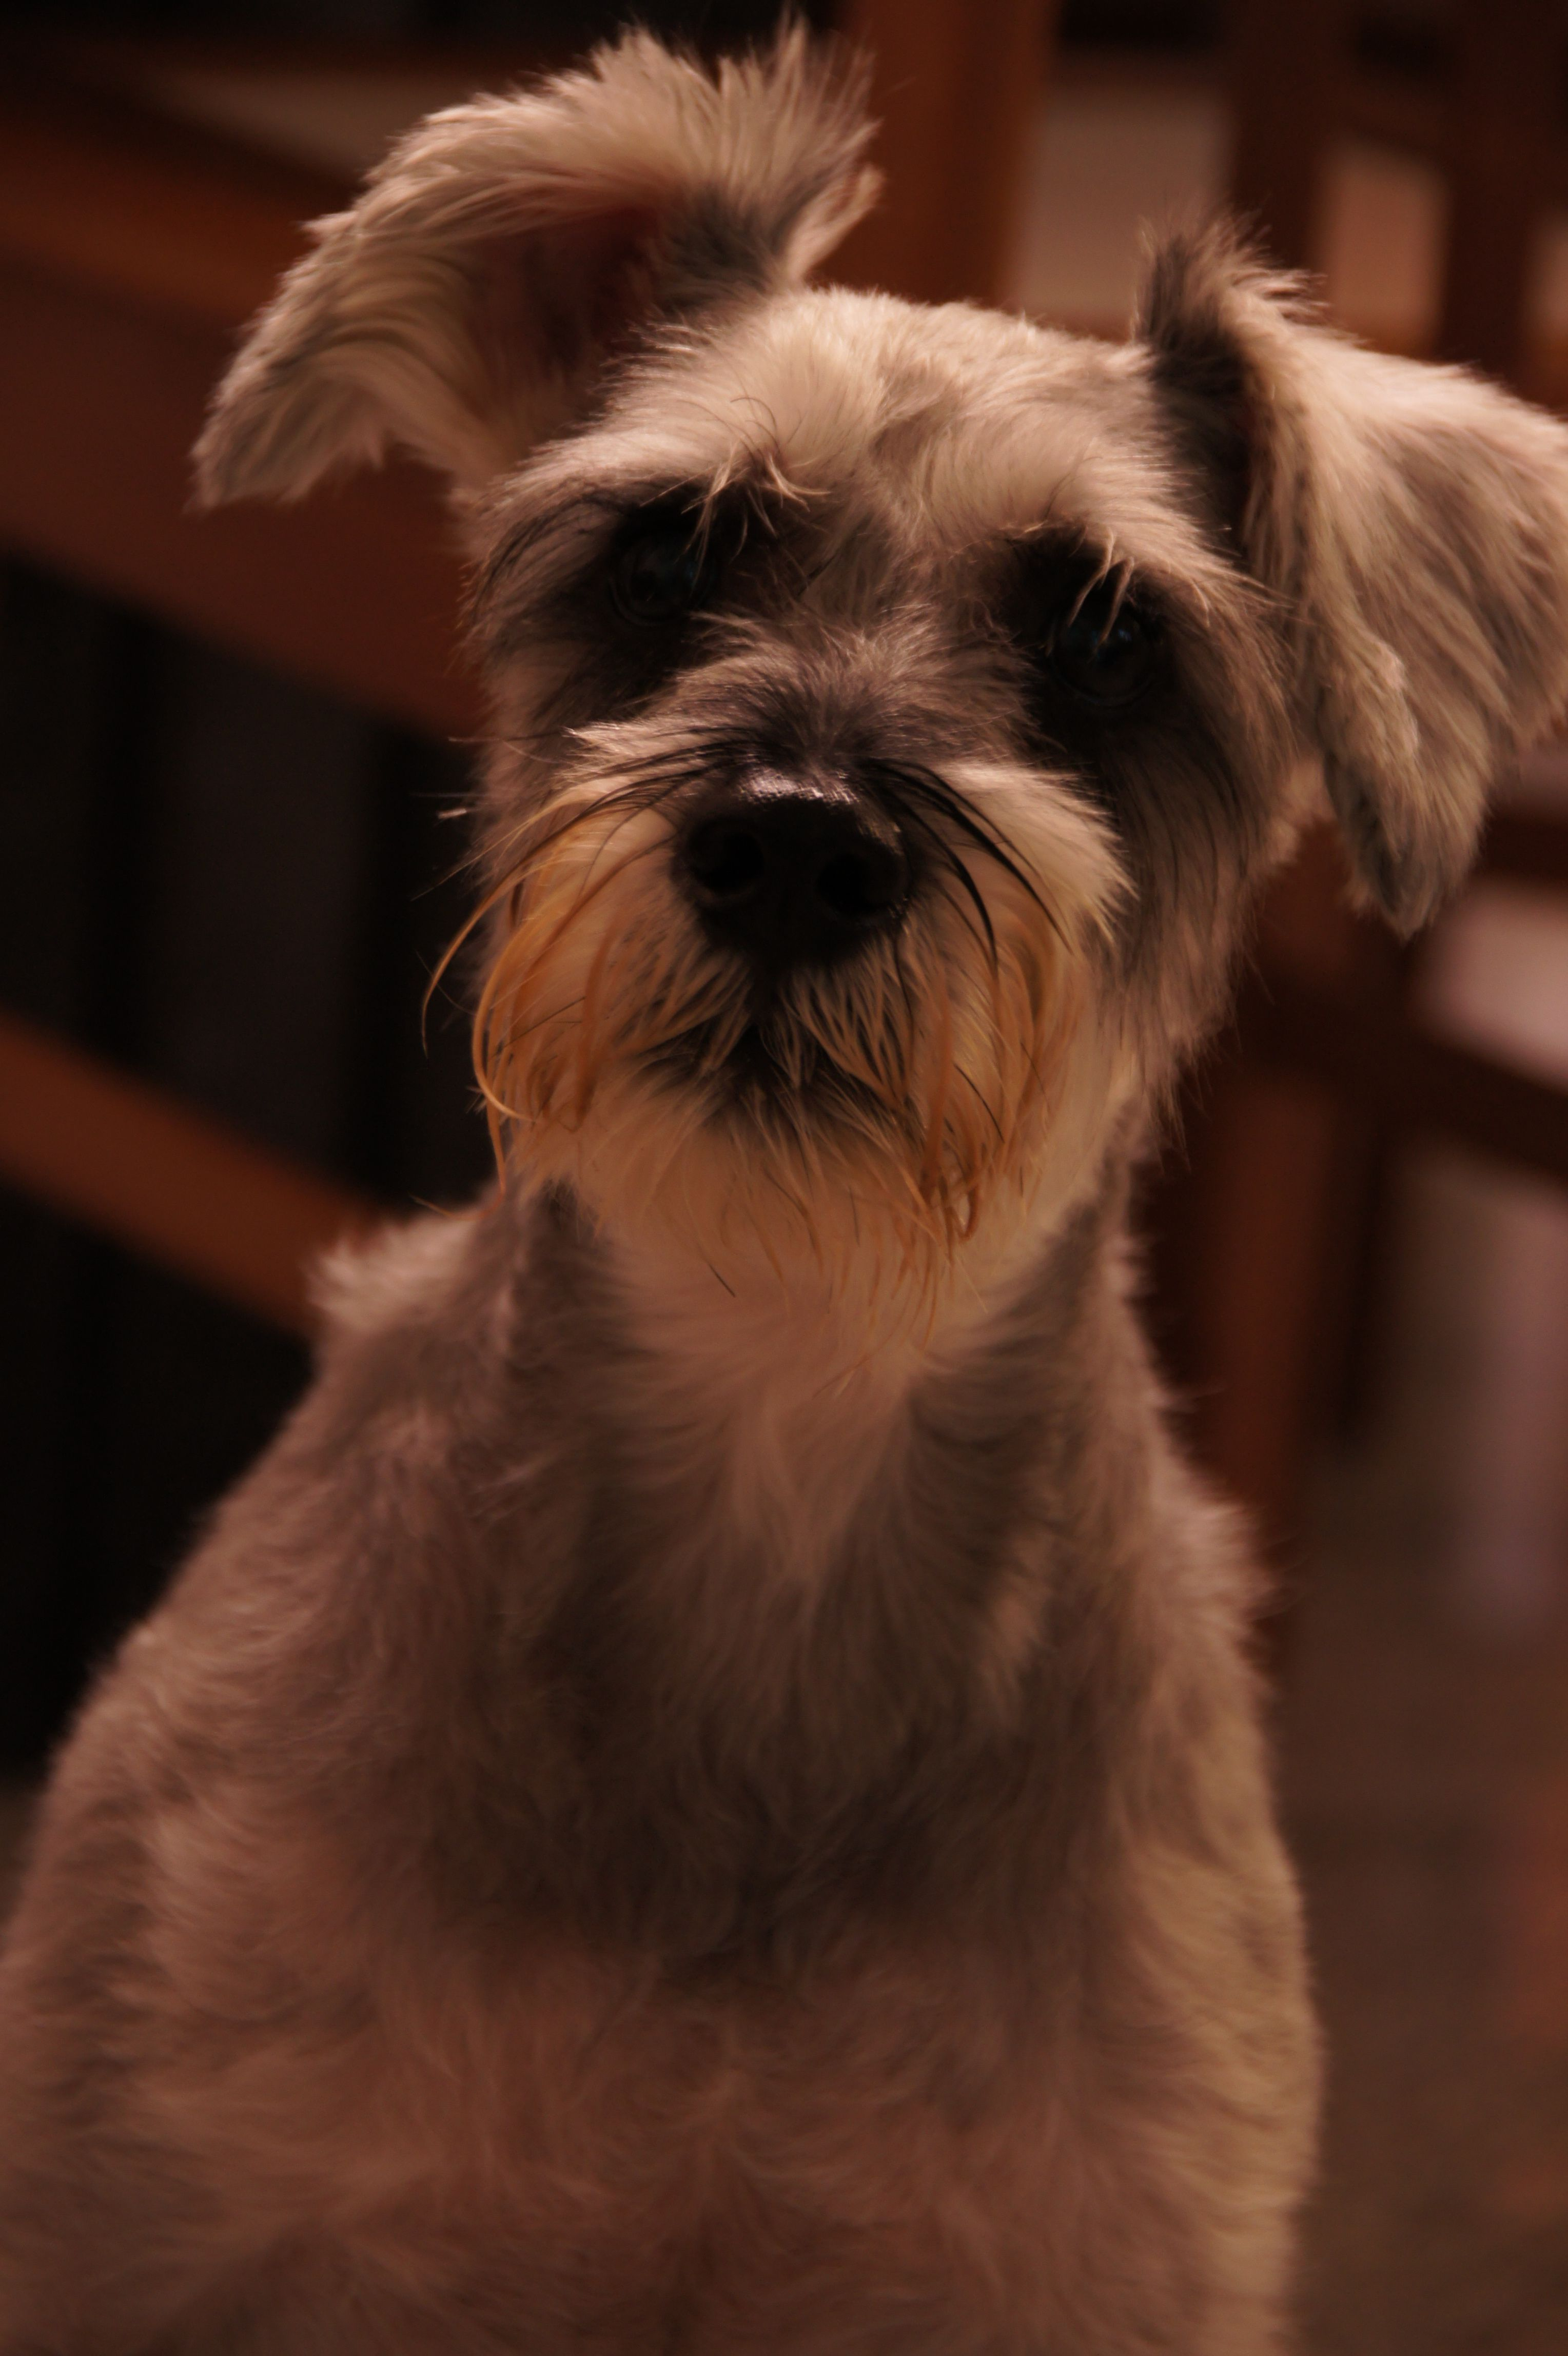 Tramp From Lady And The Tramp Lol Lady And The Tramp Affenpinscher Schnauzer